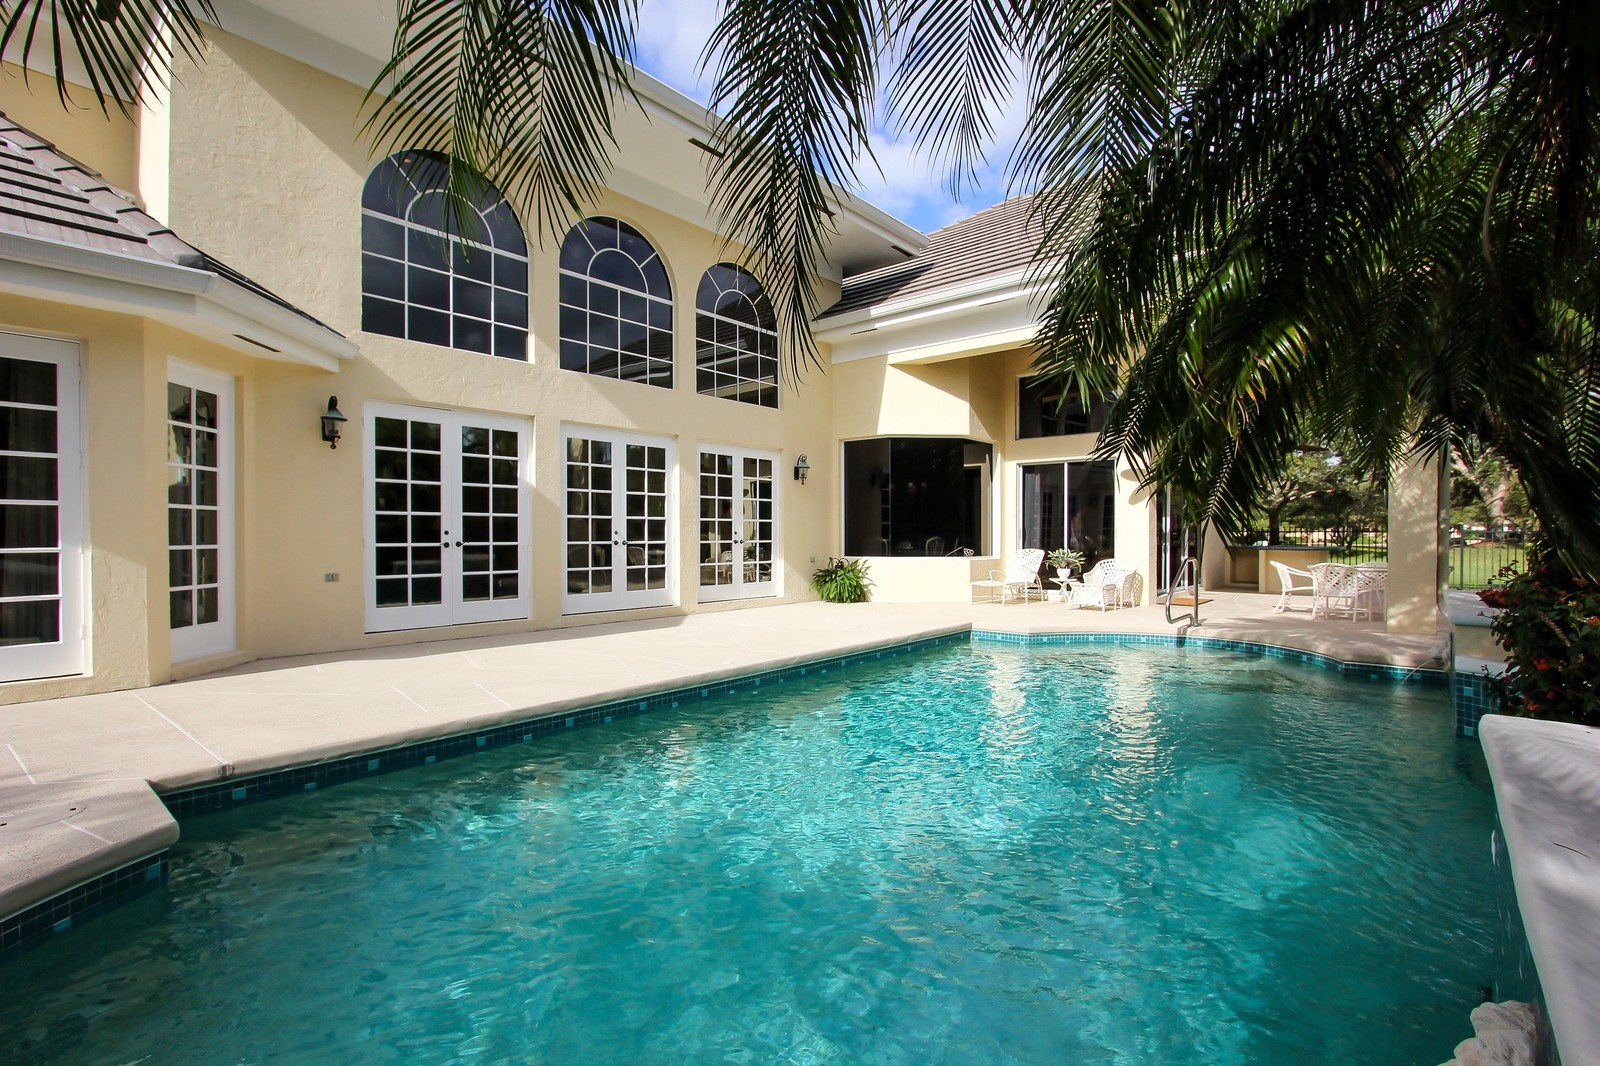 Real Estate Photography - 8725 Native Dancer, Palm Beach Gardens, FL, 33418 - Pool